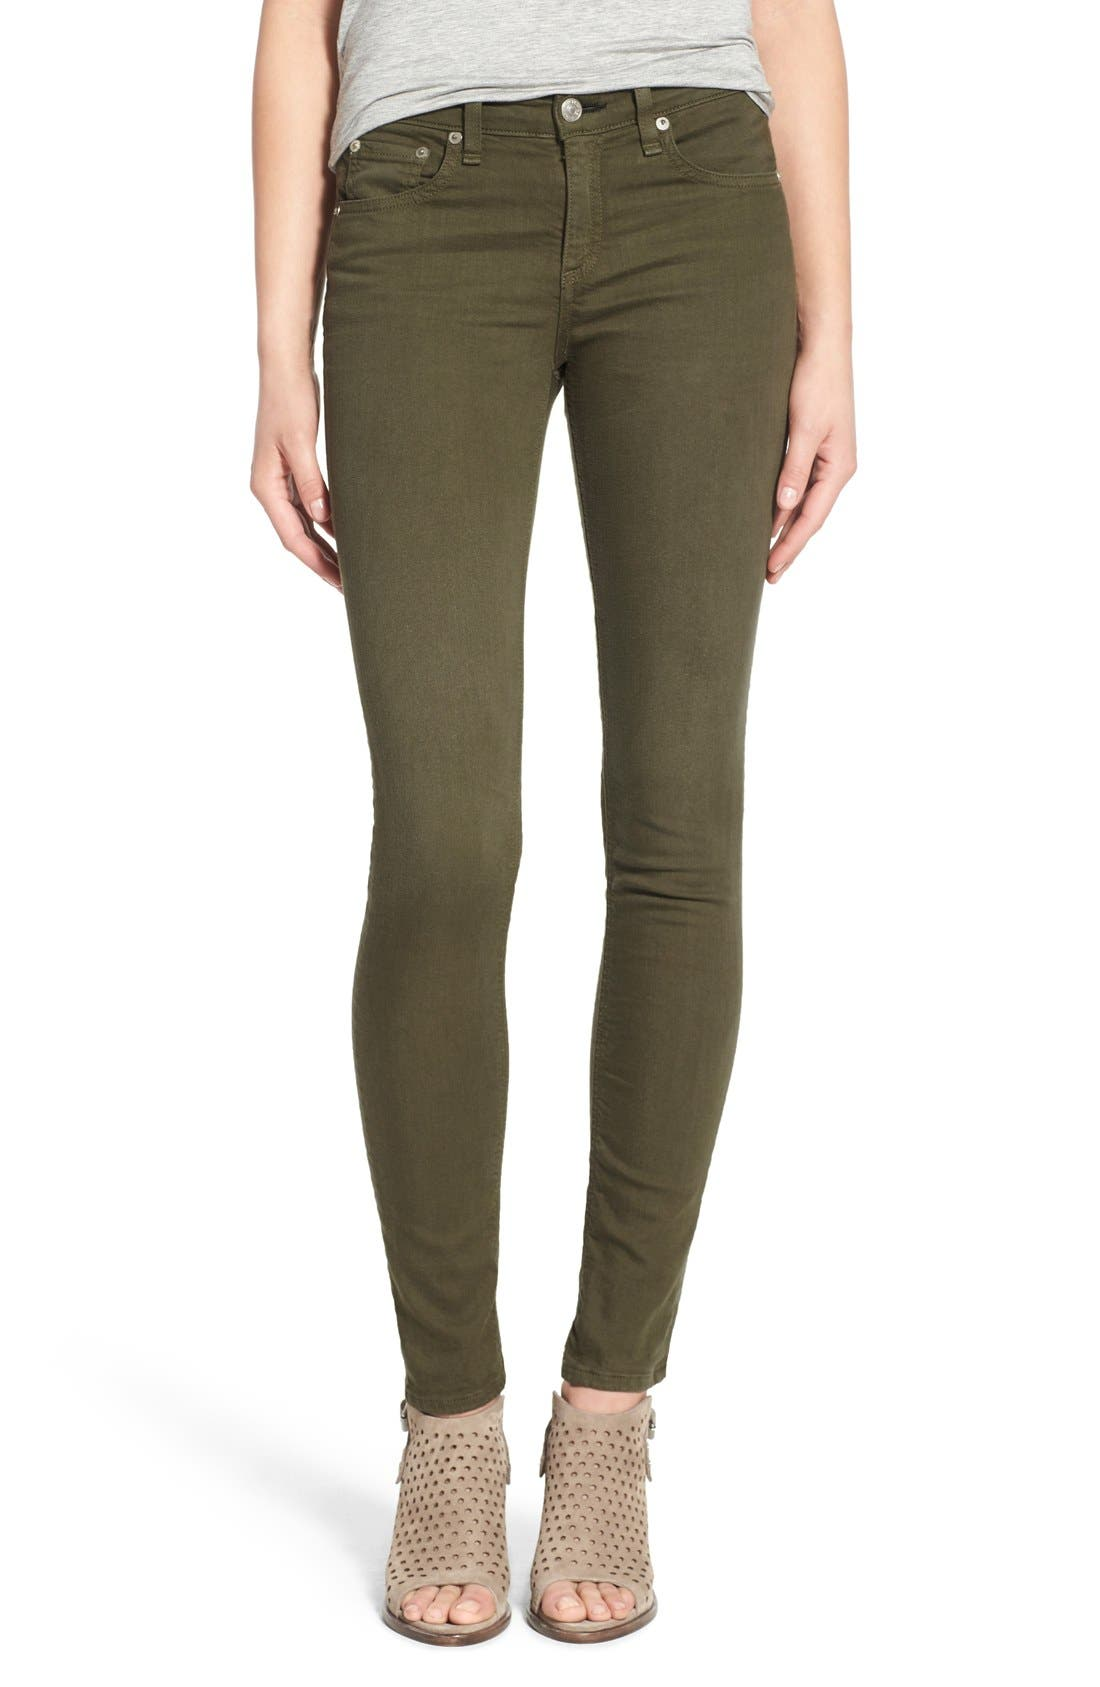 Alternate Image 1 Selected - rag & bone/JEAN Skinny Jeans (Distressed Army)